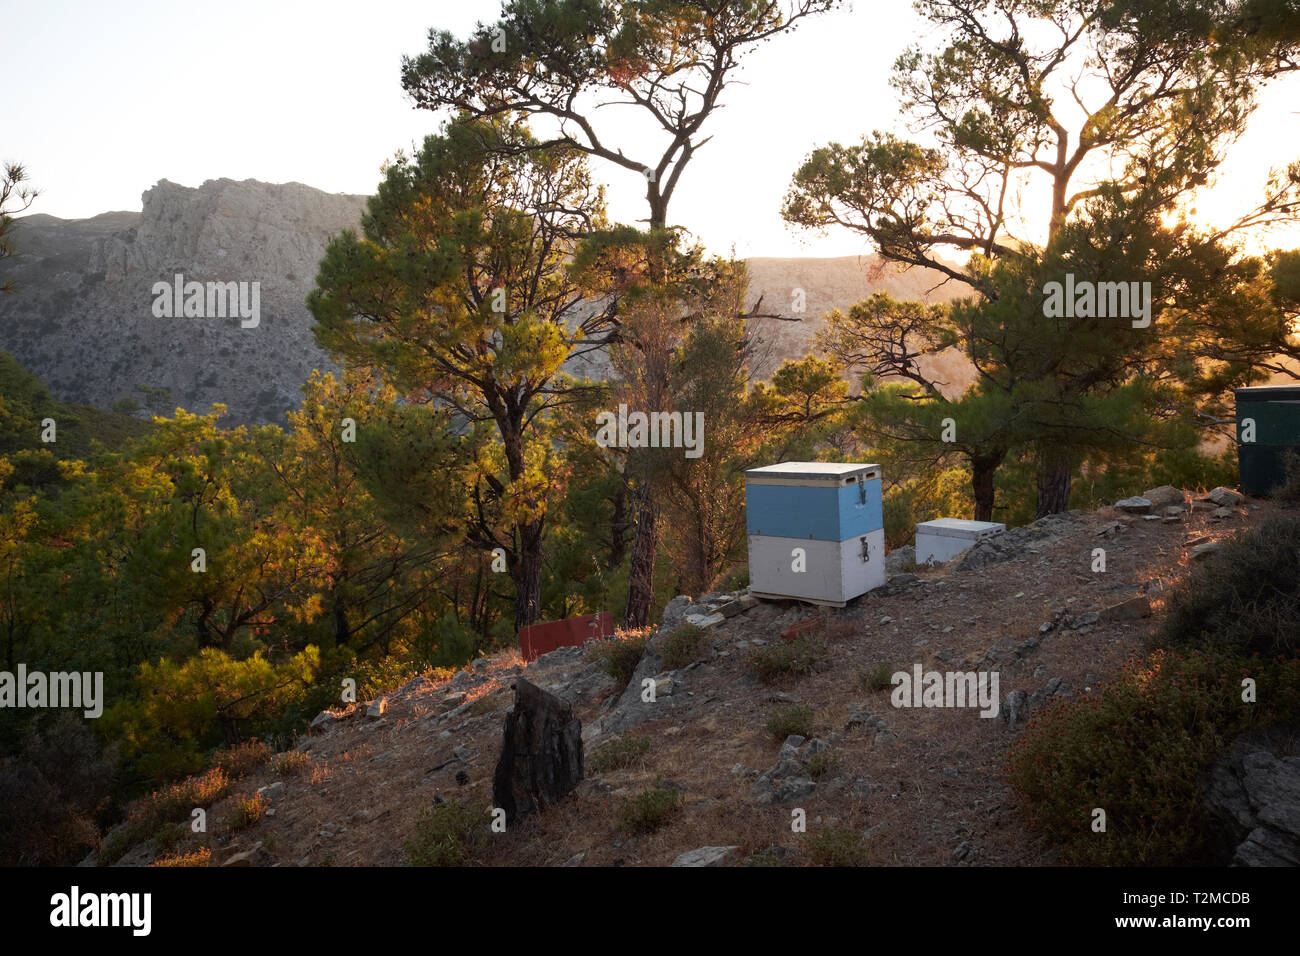 Beehives in the forest near the Chalaris Canyon, Ikaria, Greece - Stock Image